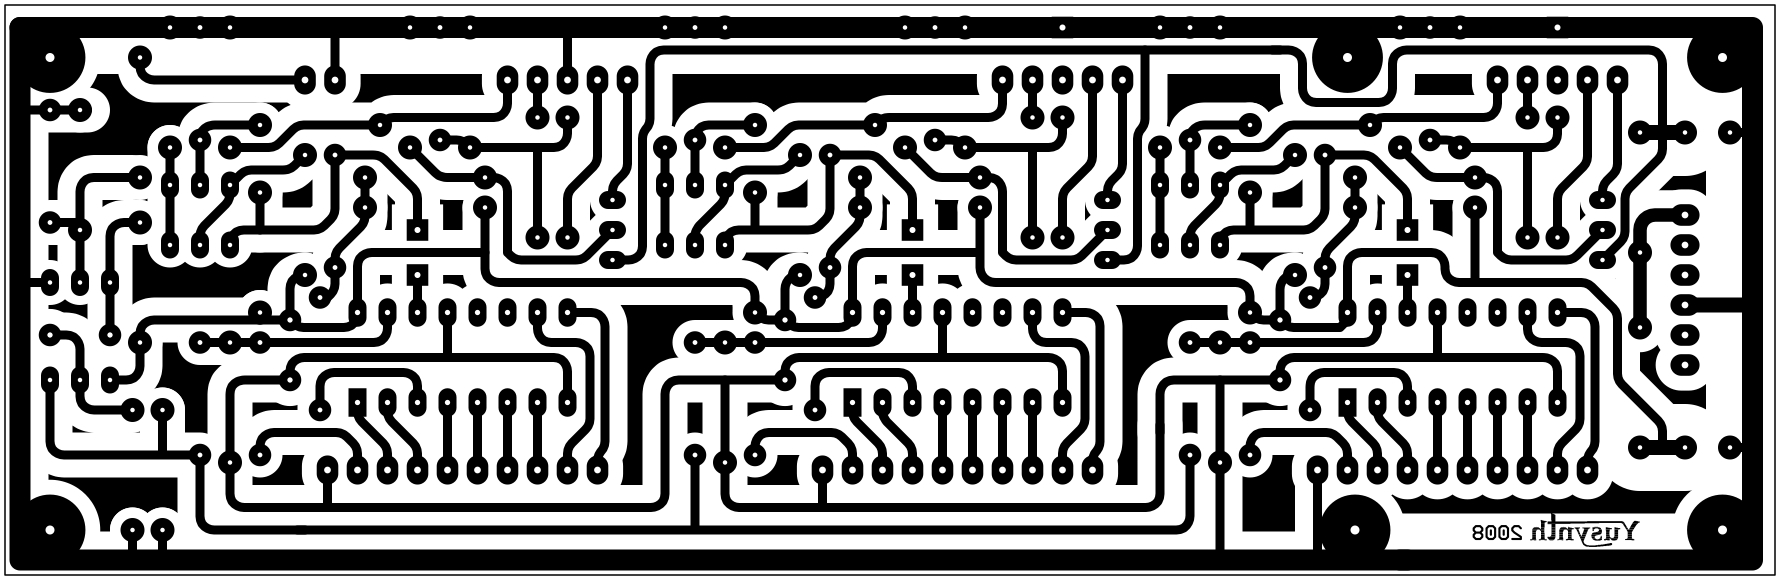 hight resolution of printed circuit board and component layout